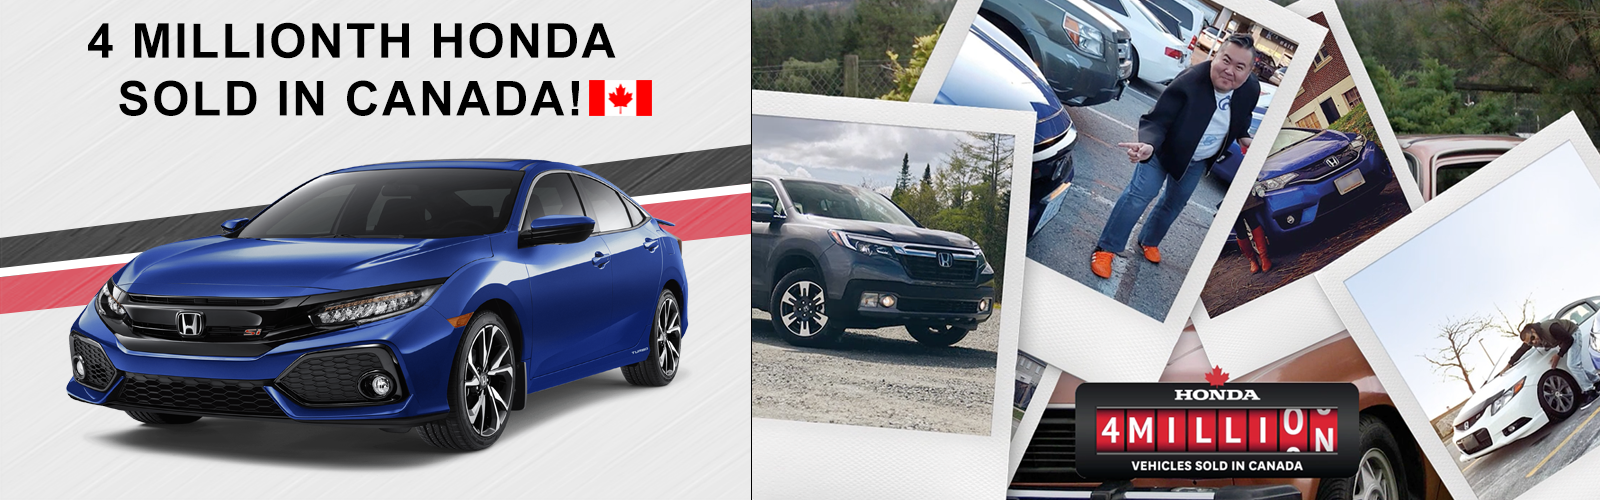 4 Million Honda Vehicles Sold In Canada